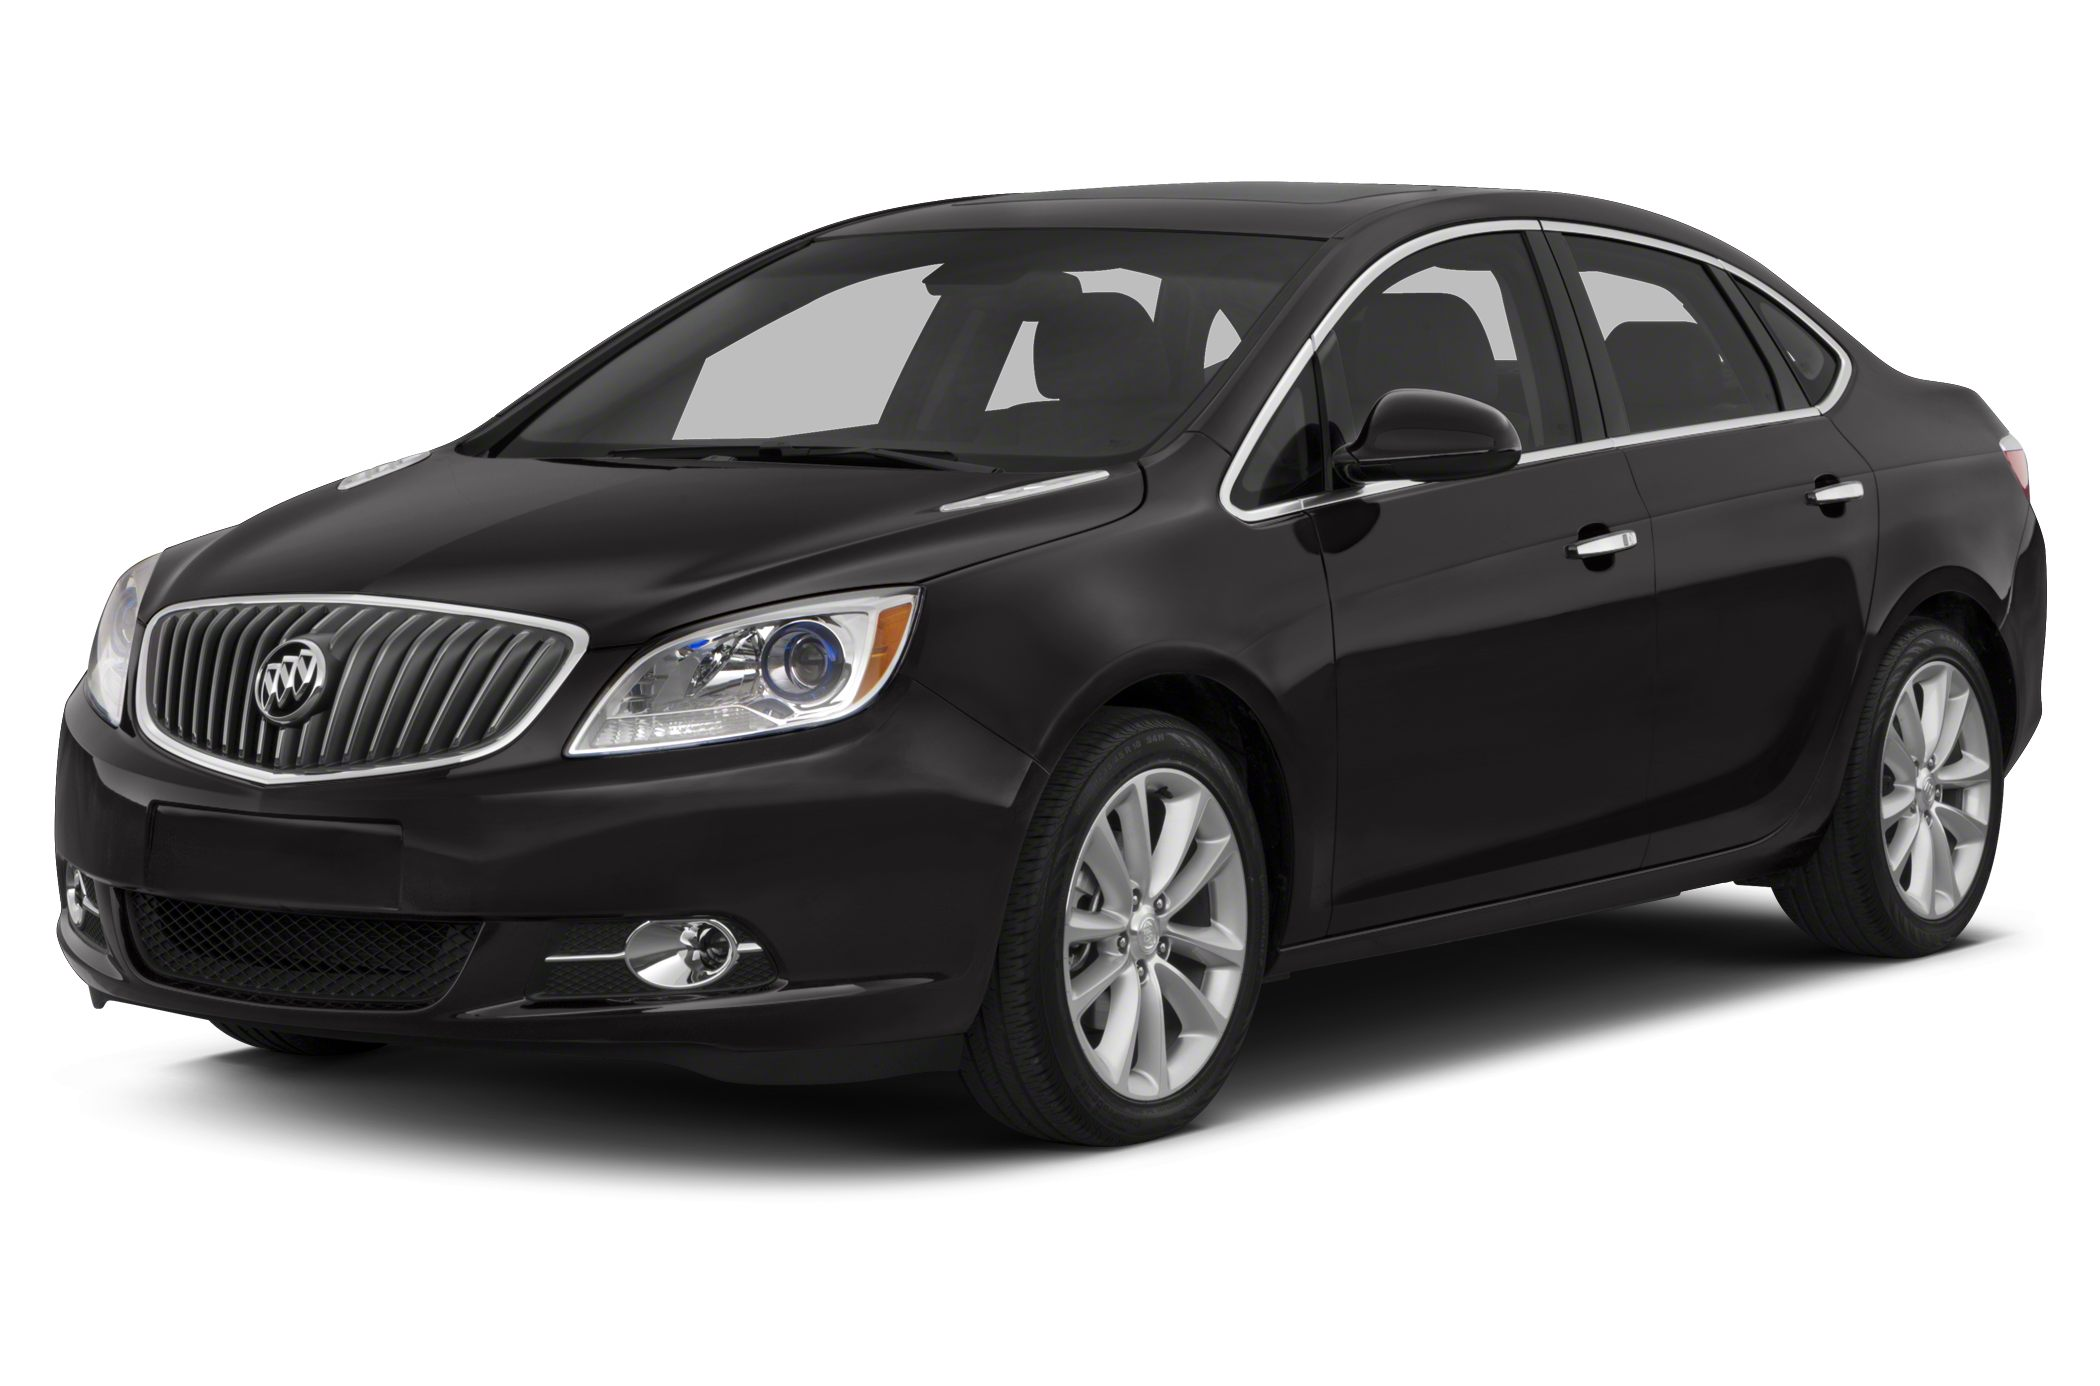 2013 Buick Verano Base Sedan for sale in Lebanon for $23,965 with 21,048 miles